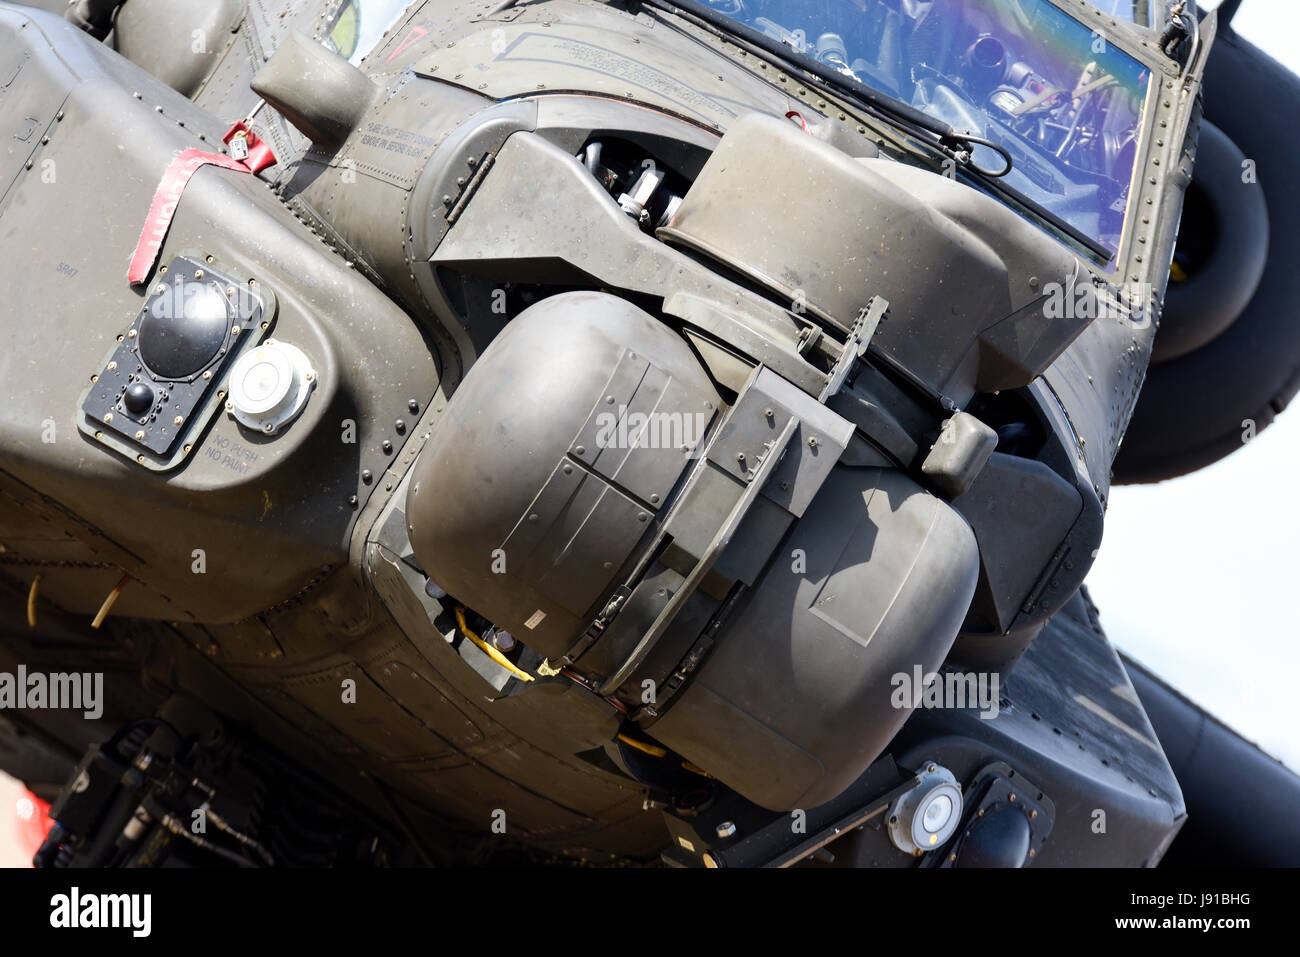 British Army Agusta Westland AH-64D Apache Longbow AH-1 attack helicopter details. Space for copy - Stock Image